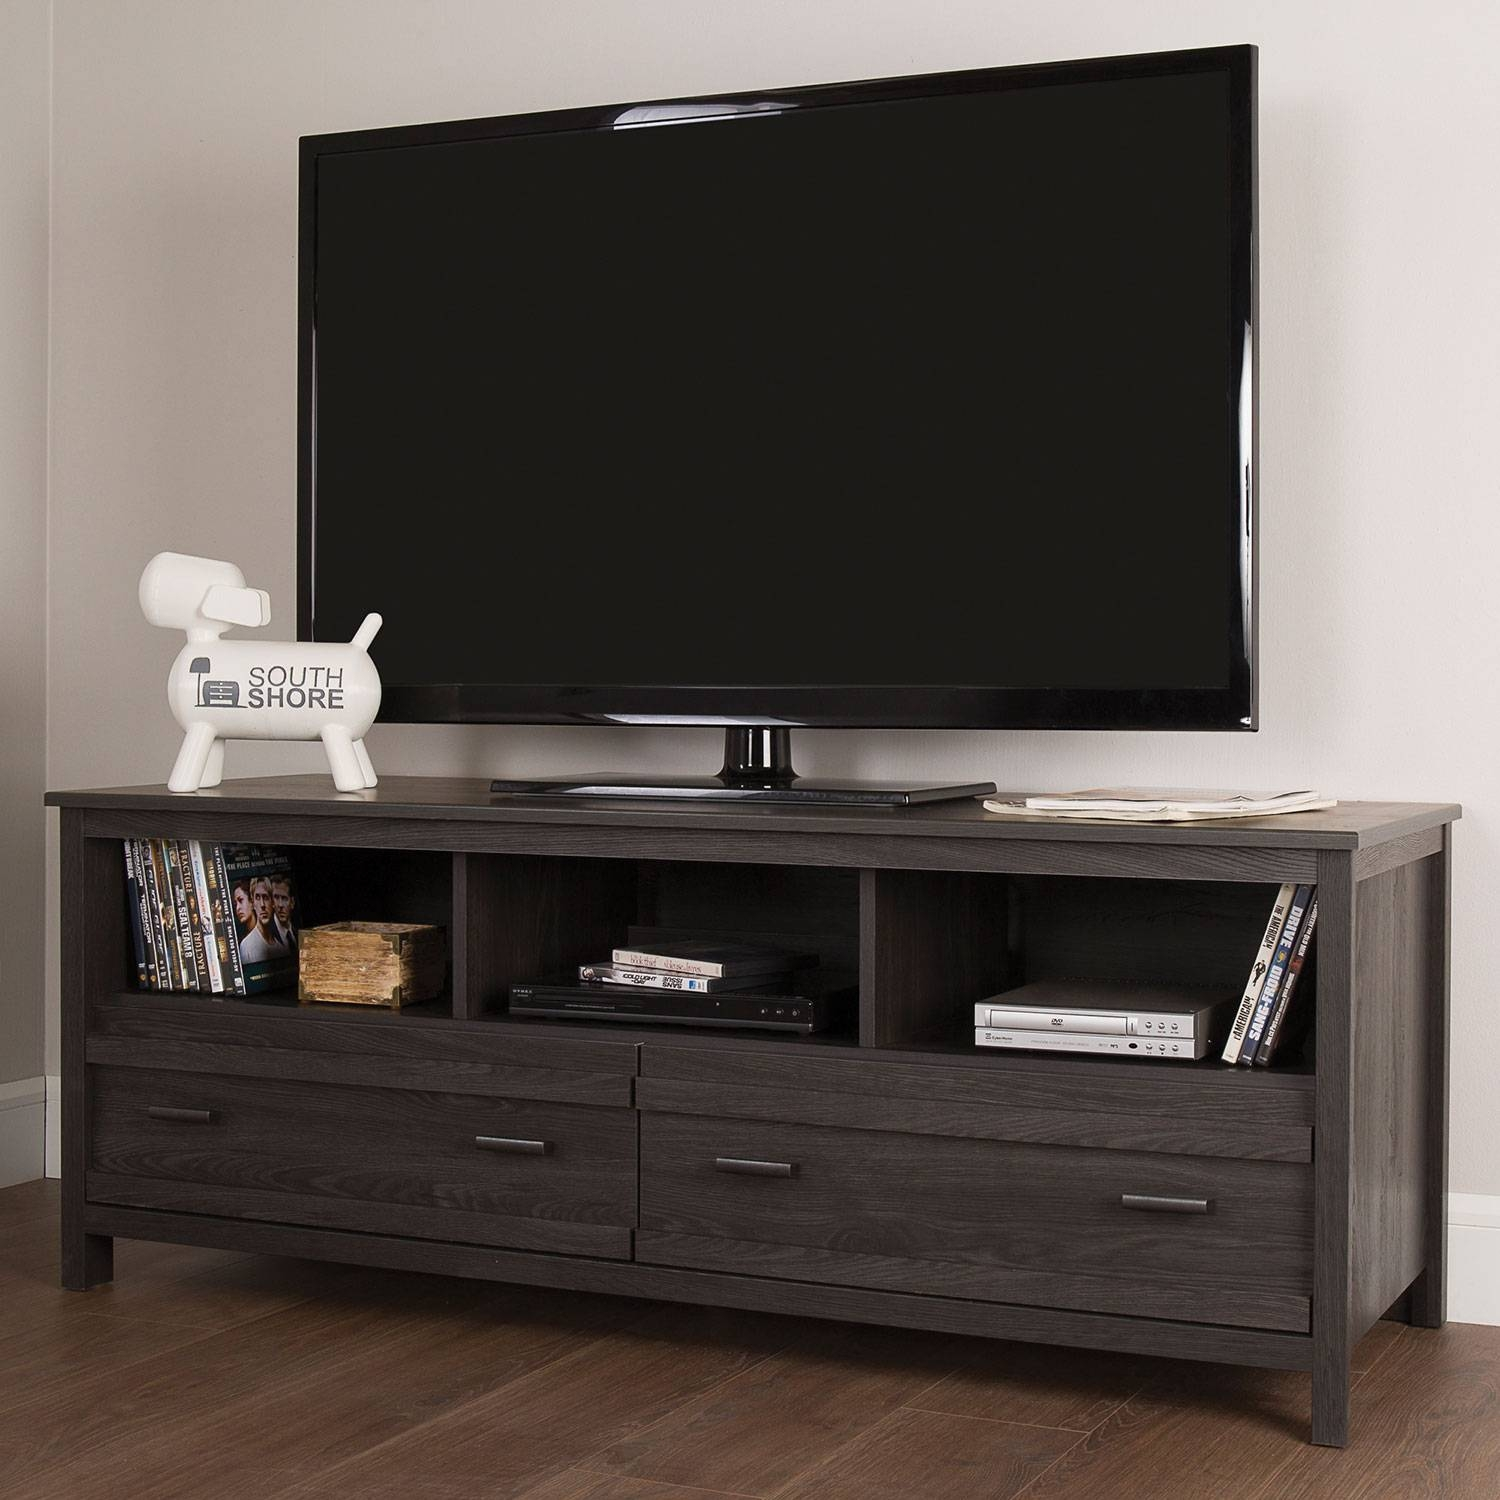 "South Shore Exhibit 60"" Tv Stand - Grey Oak : Tv Stands - Best Buy pertaining to Grey Tv Stands (Image 11 of 15)"